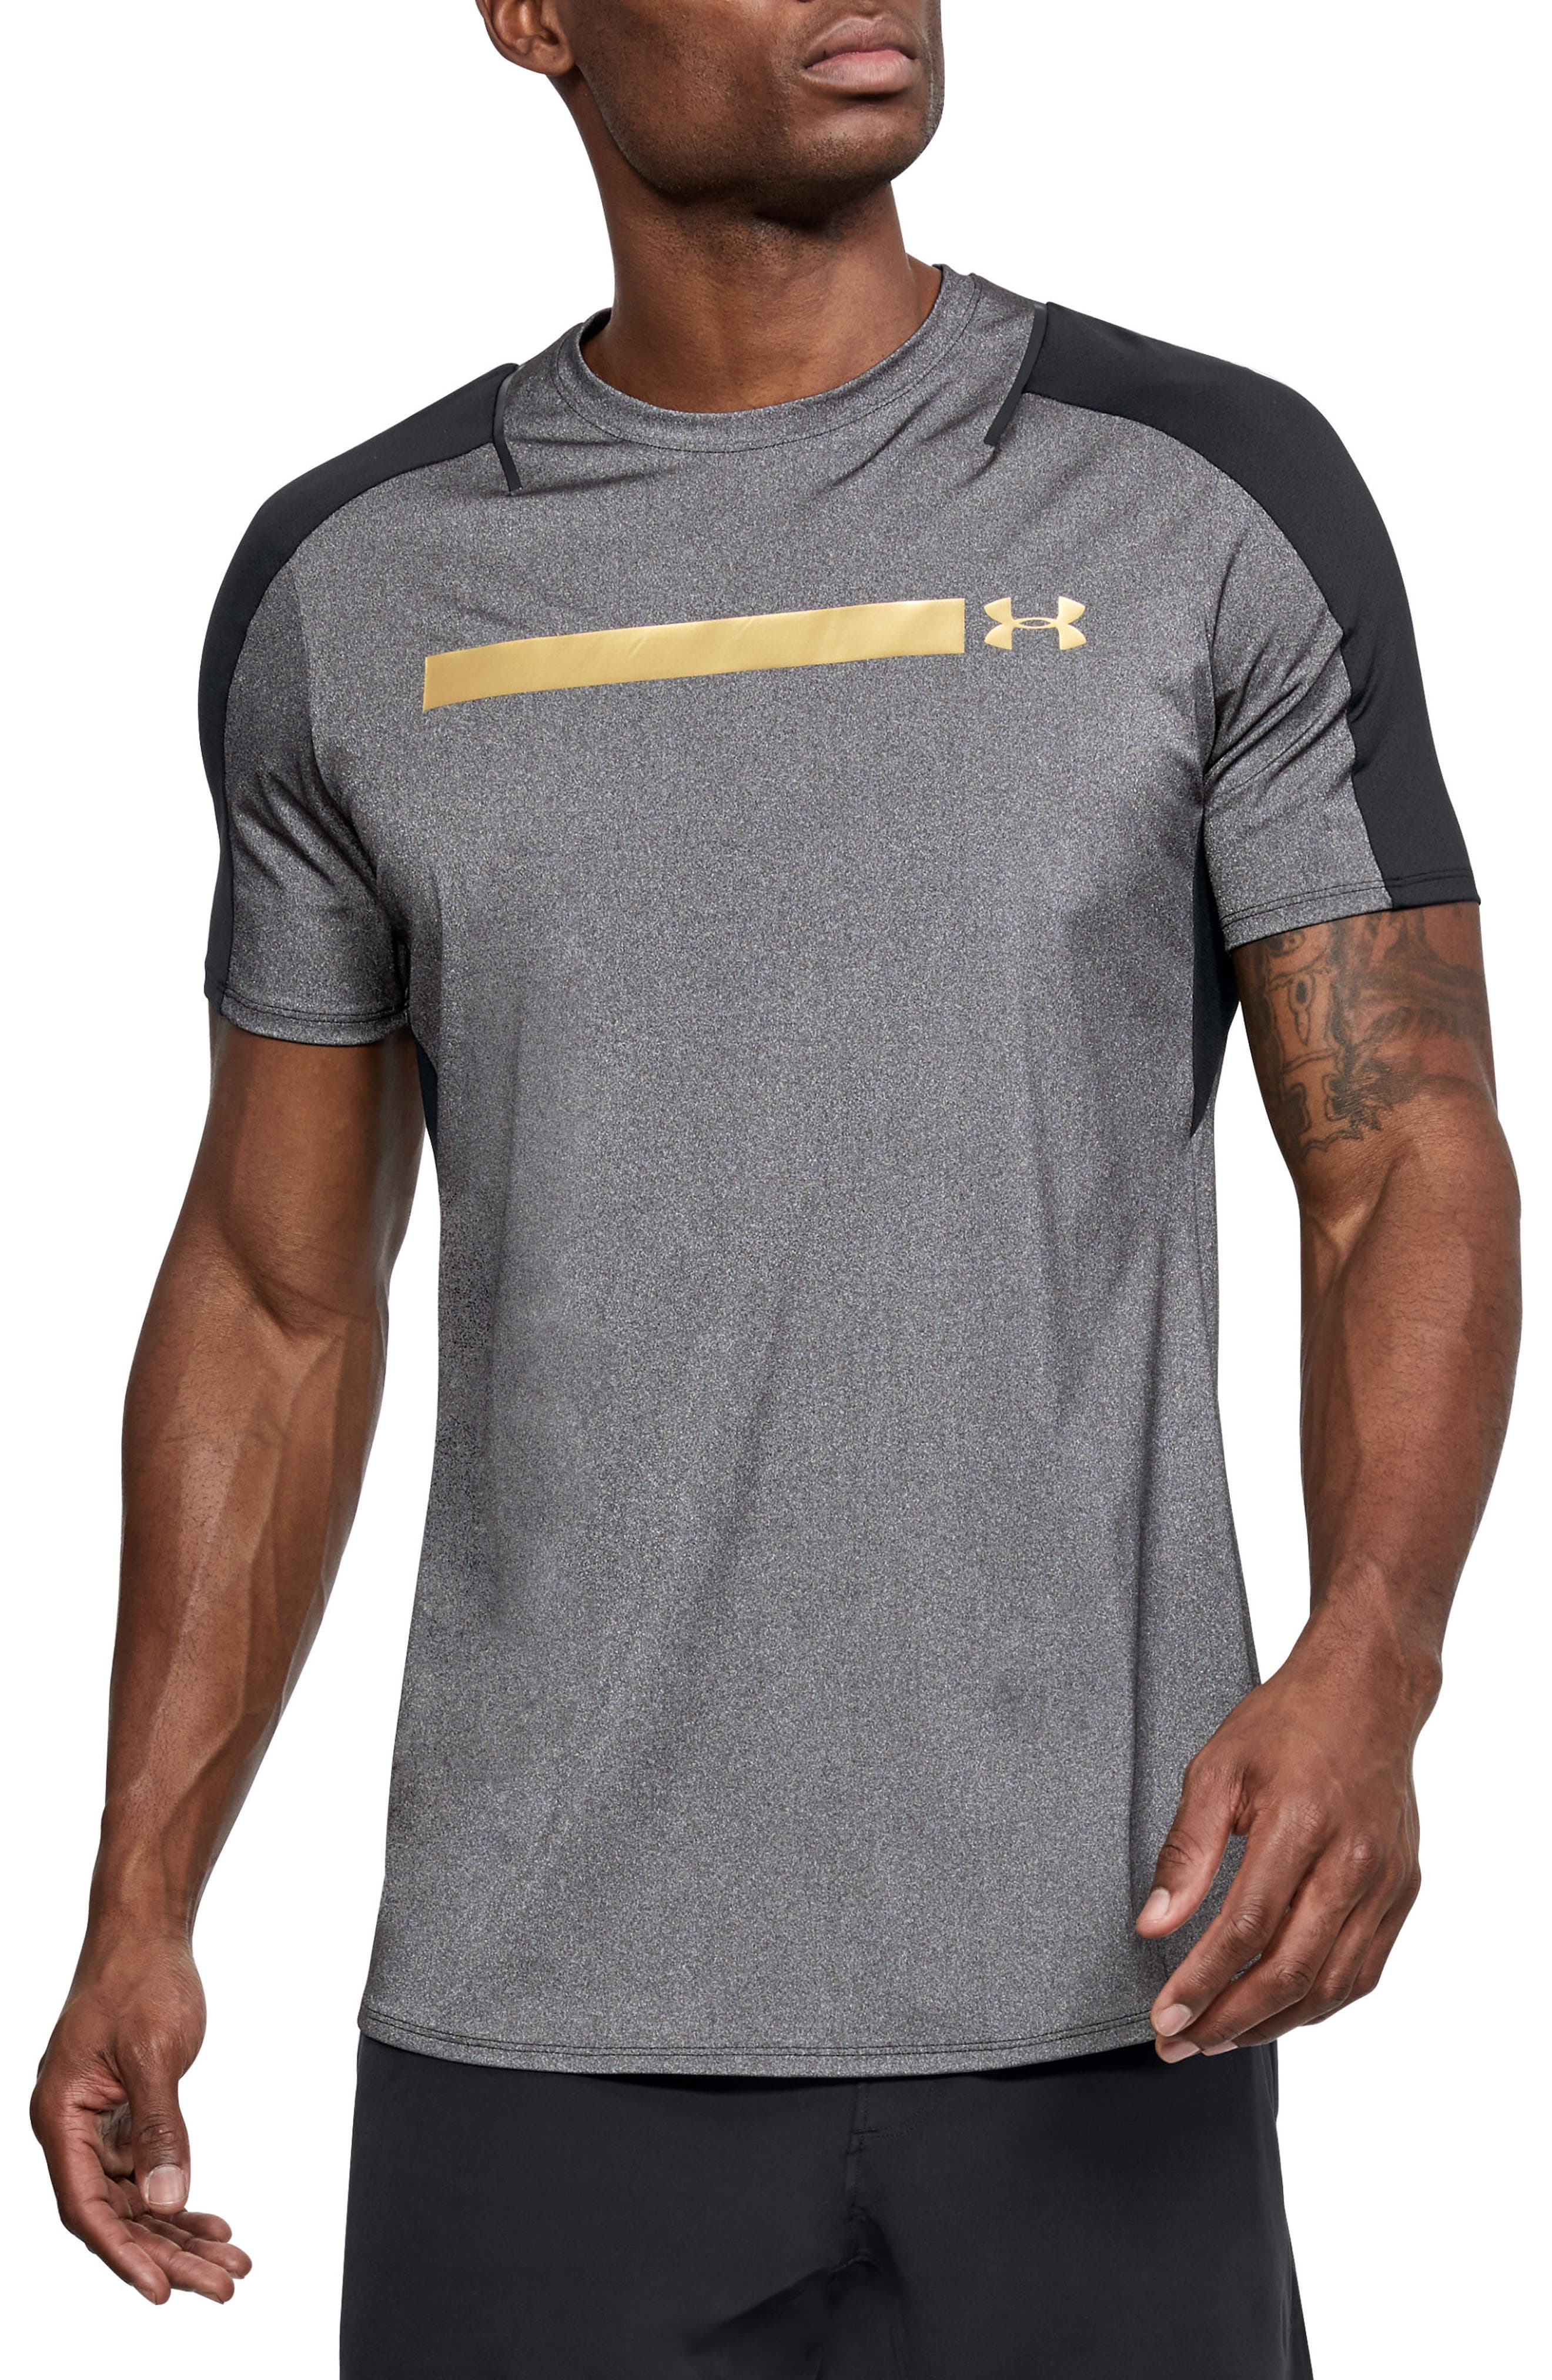 Perpetual Fitted Shirt,                         Main,                         color, Black/ Metallic Victory Gold